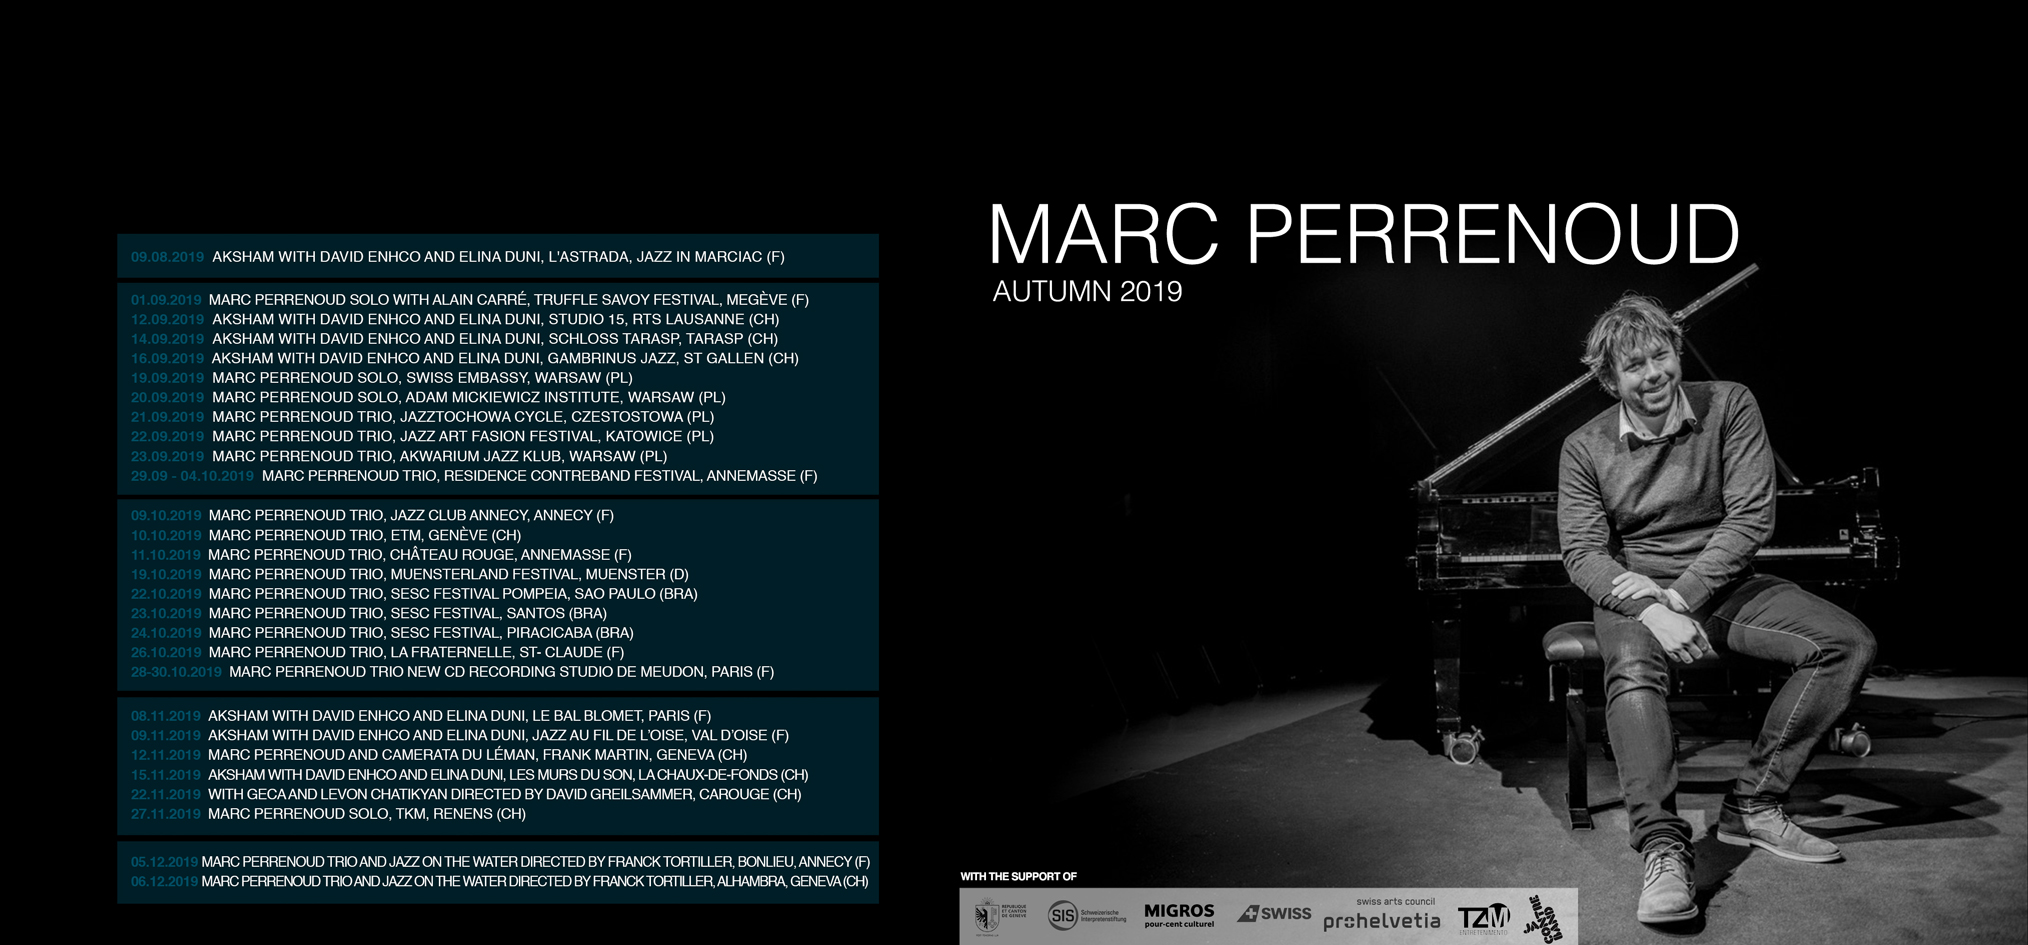 Marc-Perrenoud-autumn